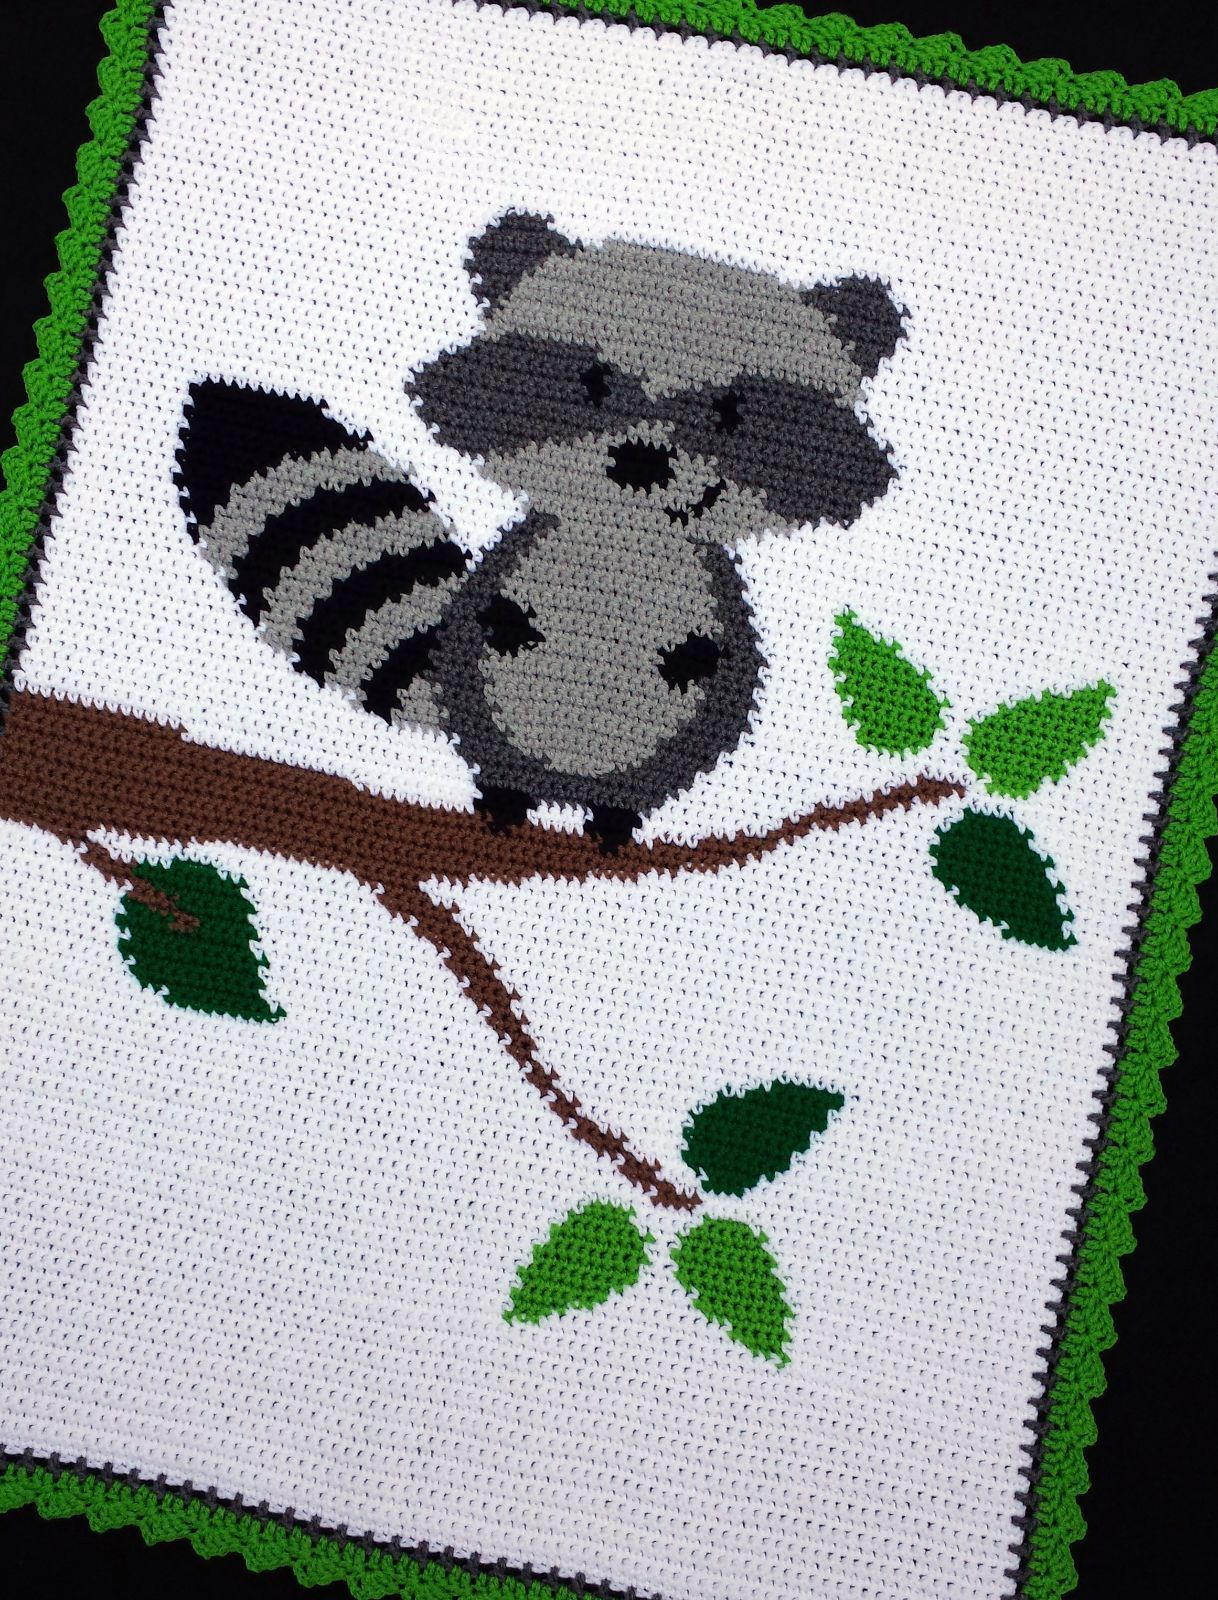 Crochet Patterns - Raccoon In A Tree Woodland/Forest Baby Afghan ...